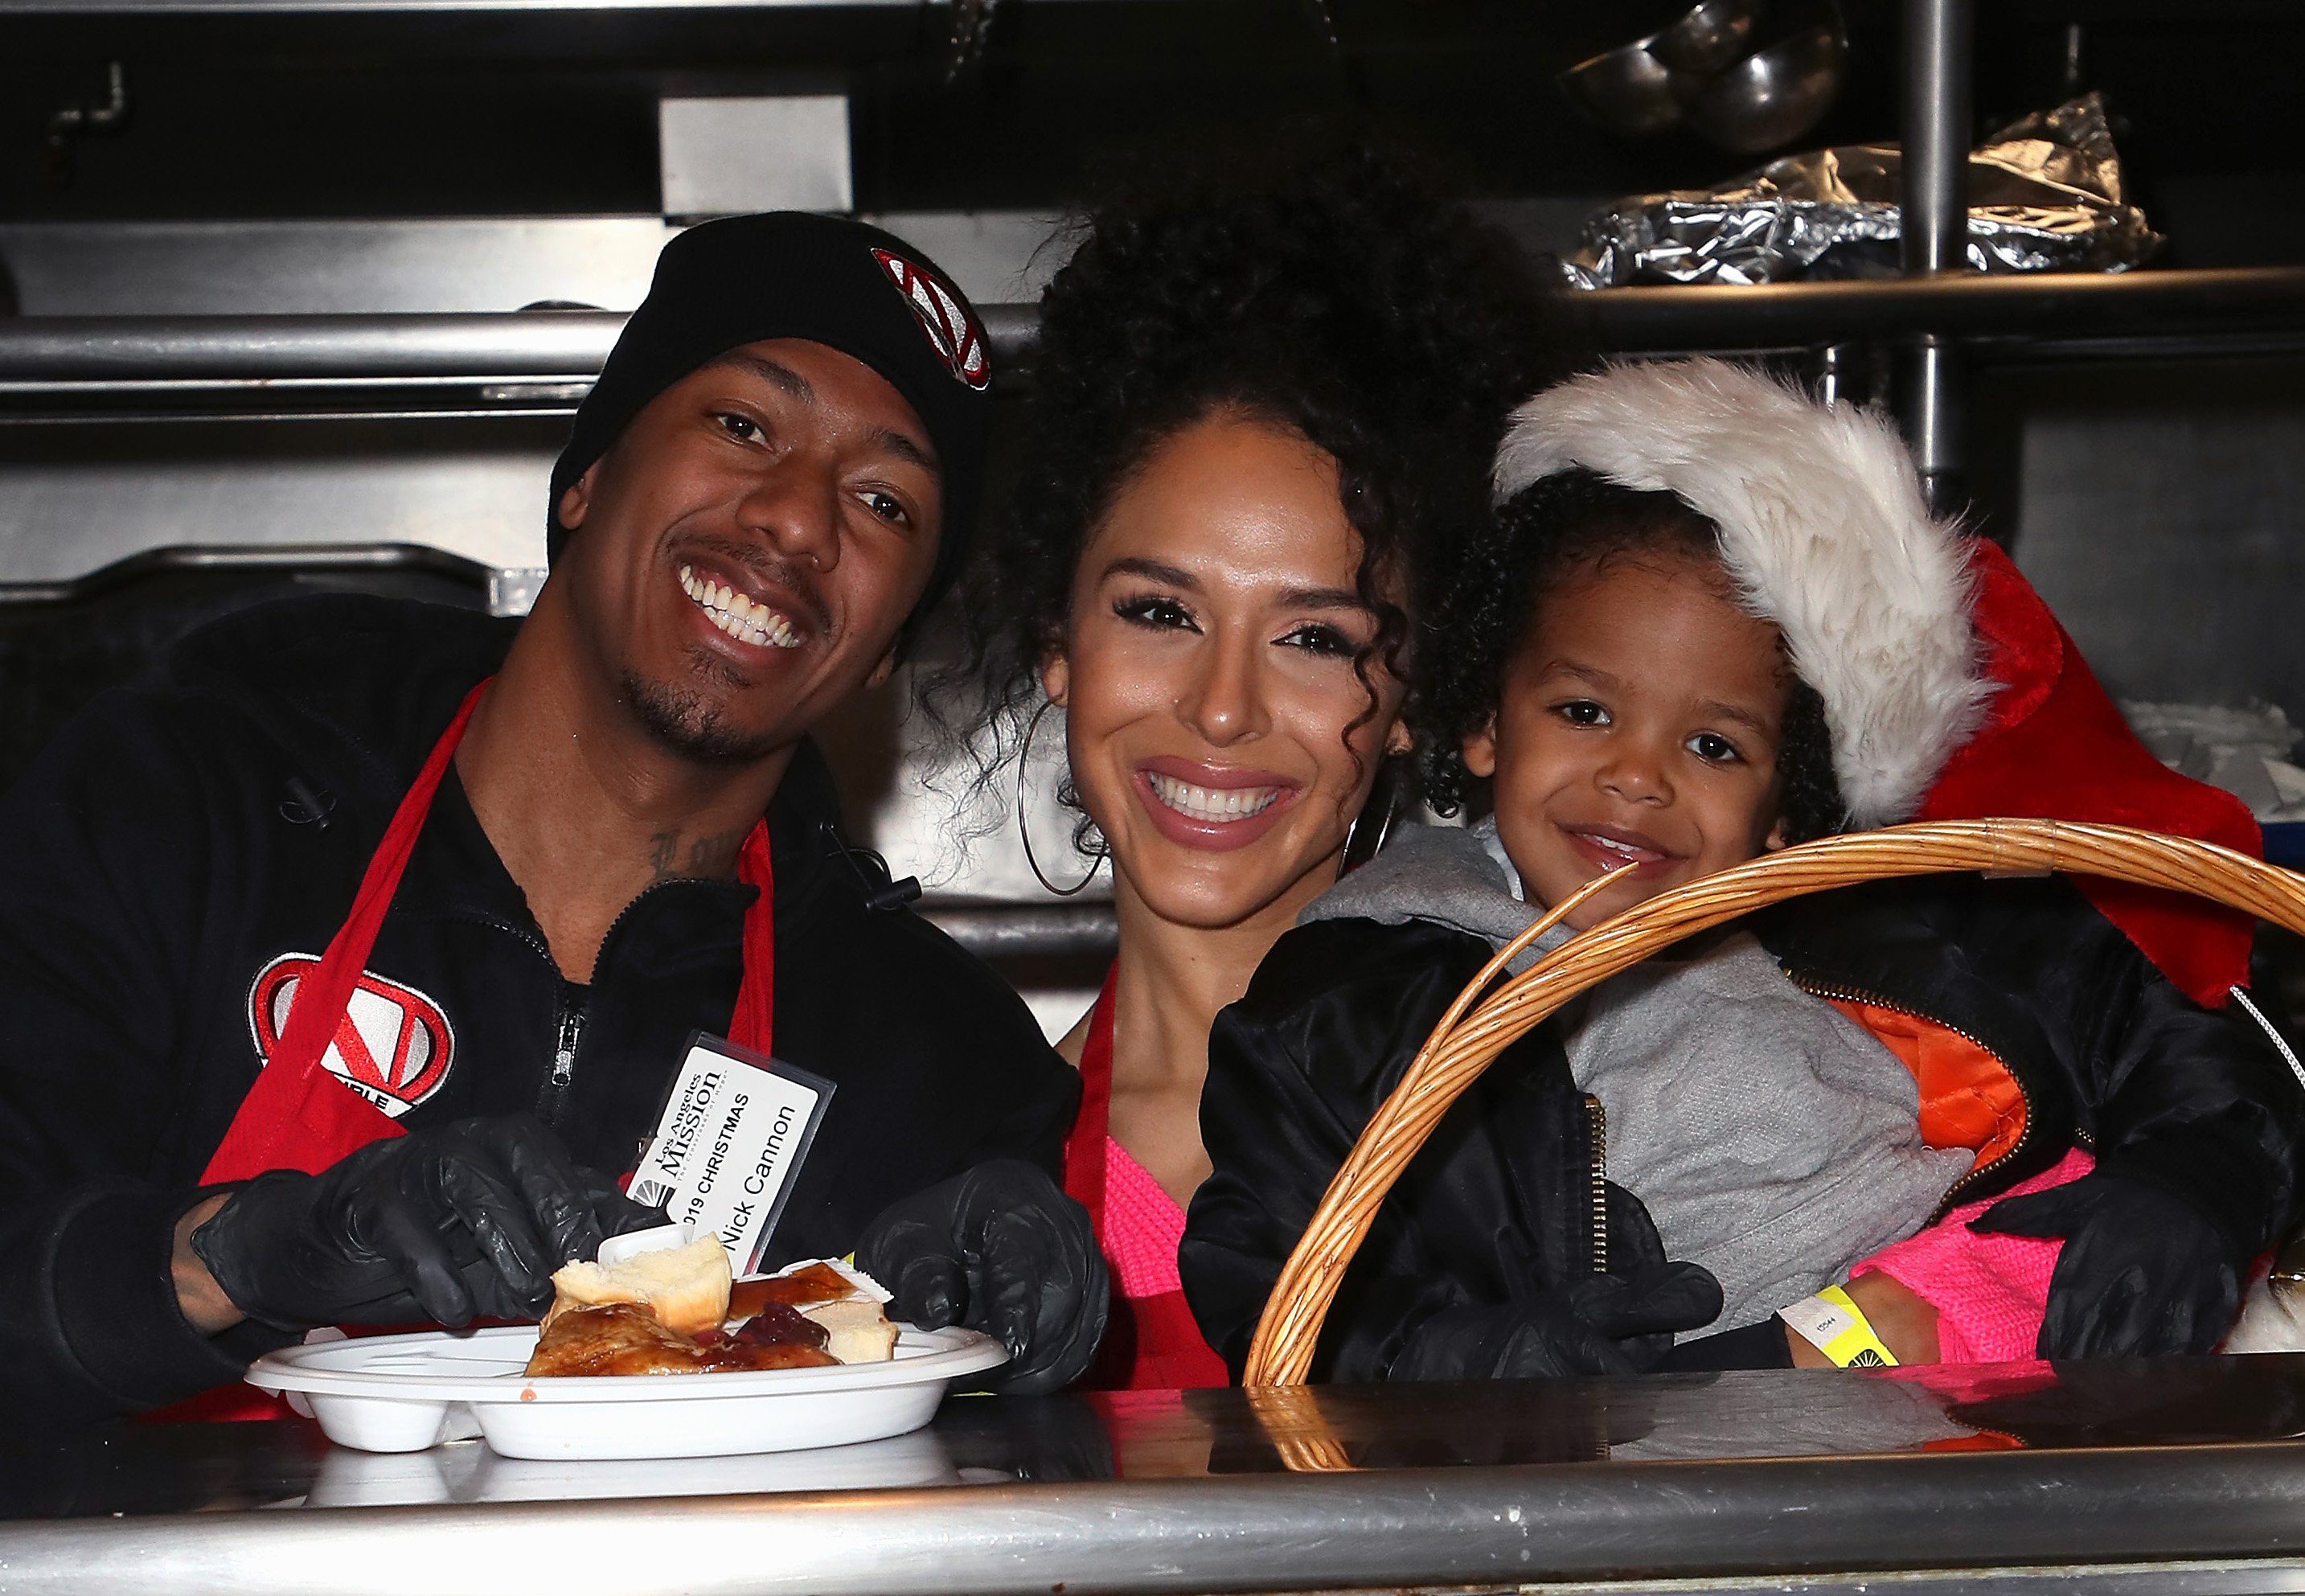 Cannon, Bell, and their son Golden at a Christmas celebration on December 23, 2019 in Los Angeles, California.| Photo: Getty Images